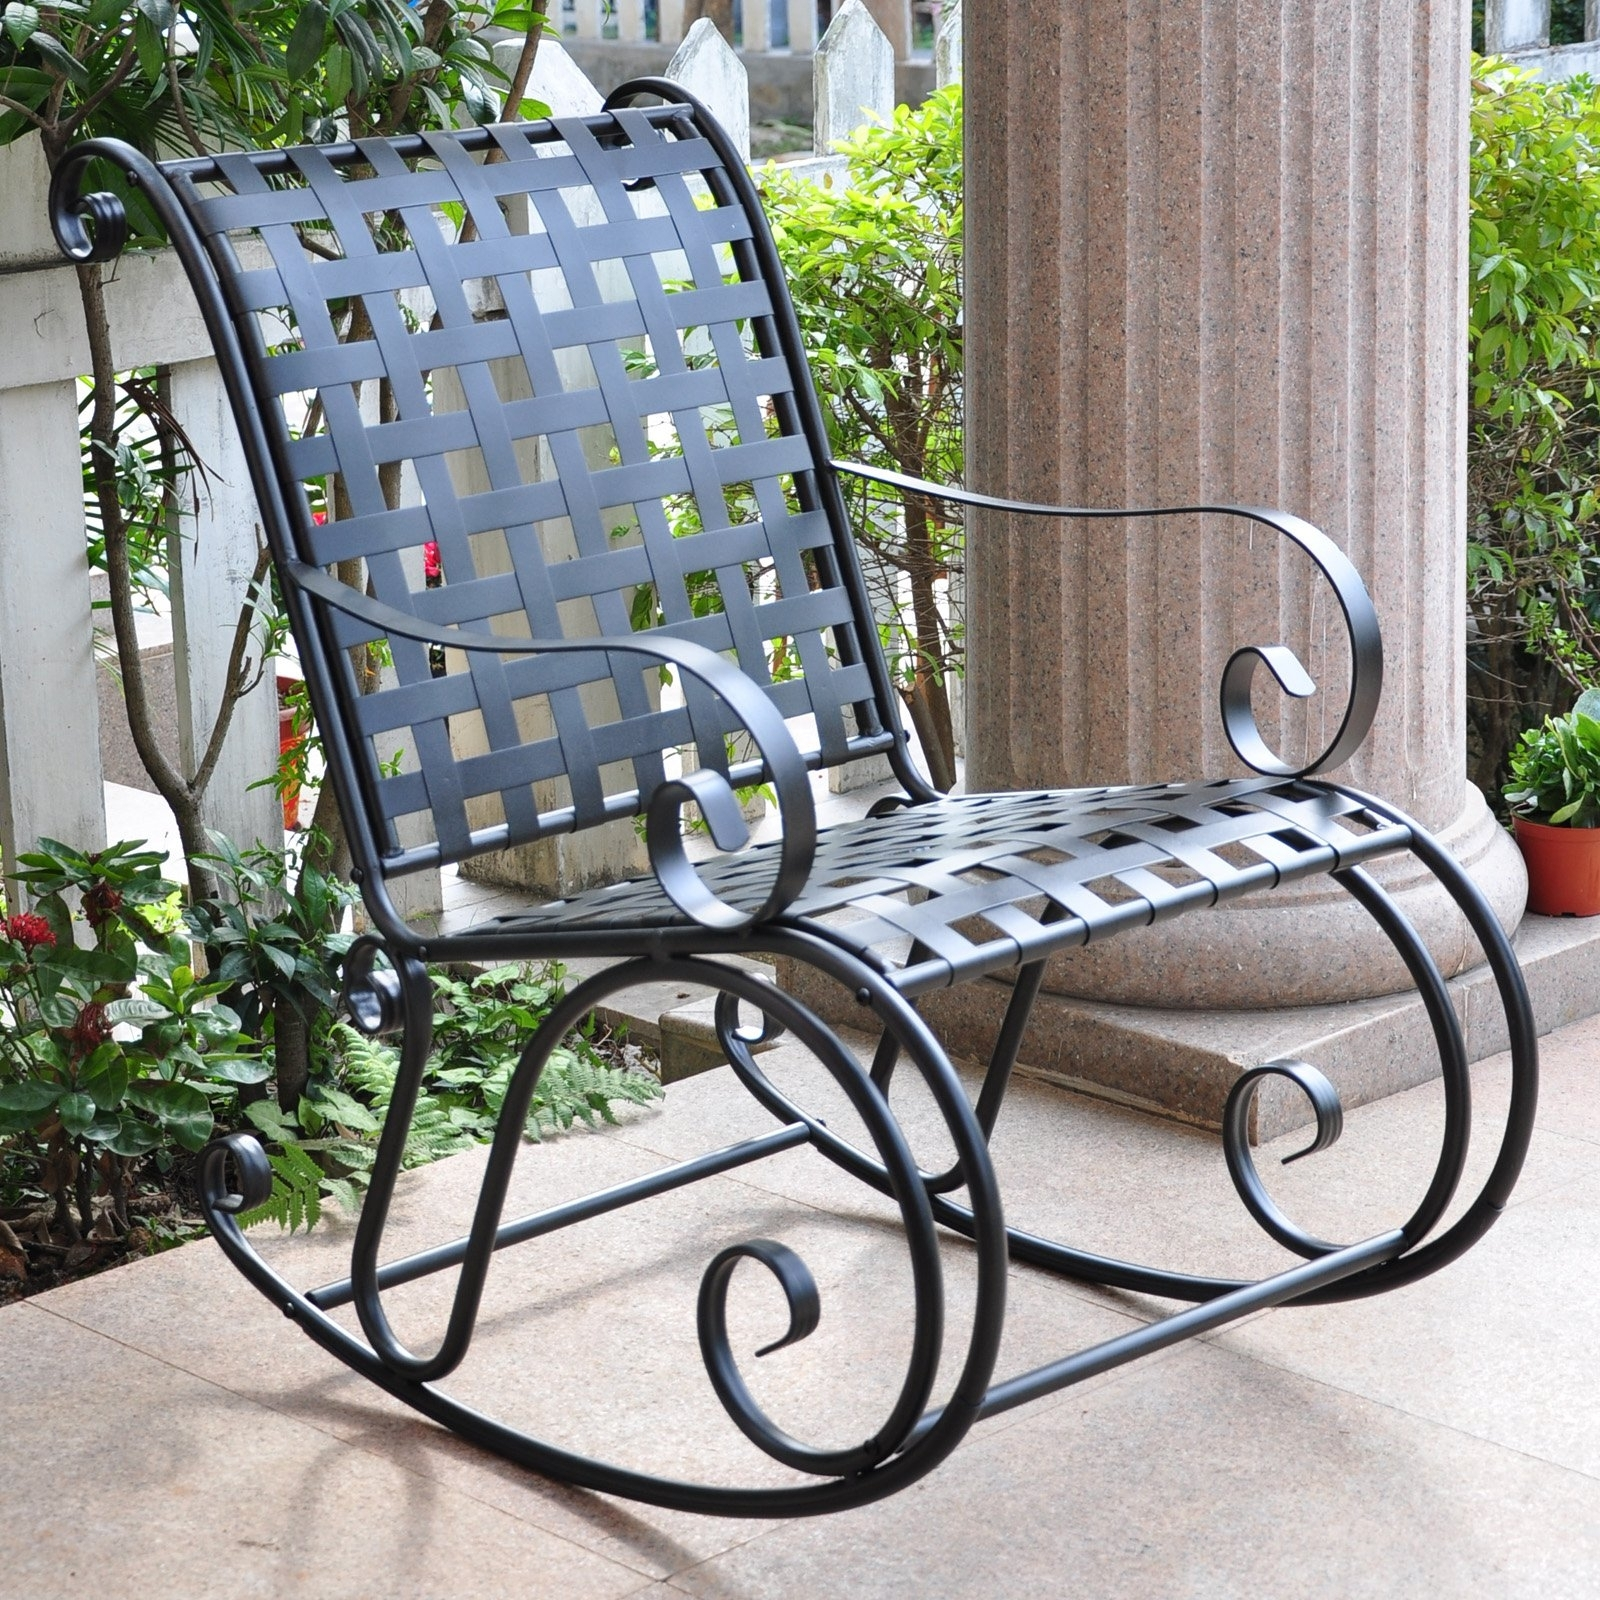 Iron Rocking Patio Chairs In Most Popular Wrought Iron Rocking Chair Patio Furniture Designs Outdoor Chairs (View 5 of 15)